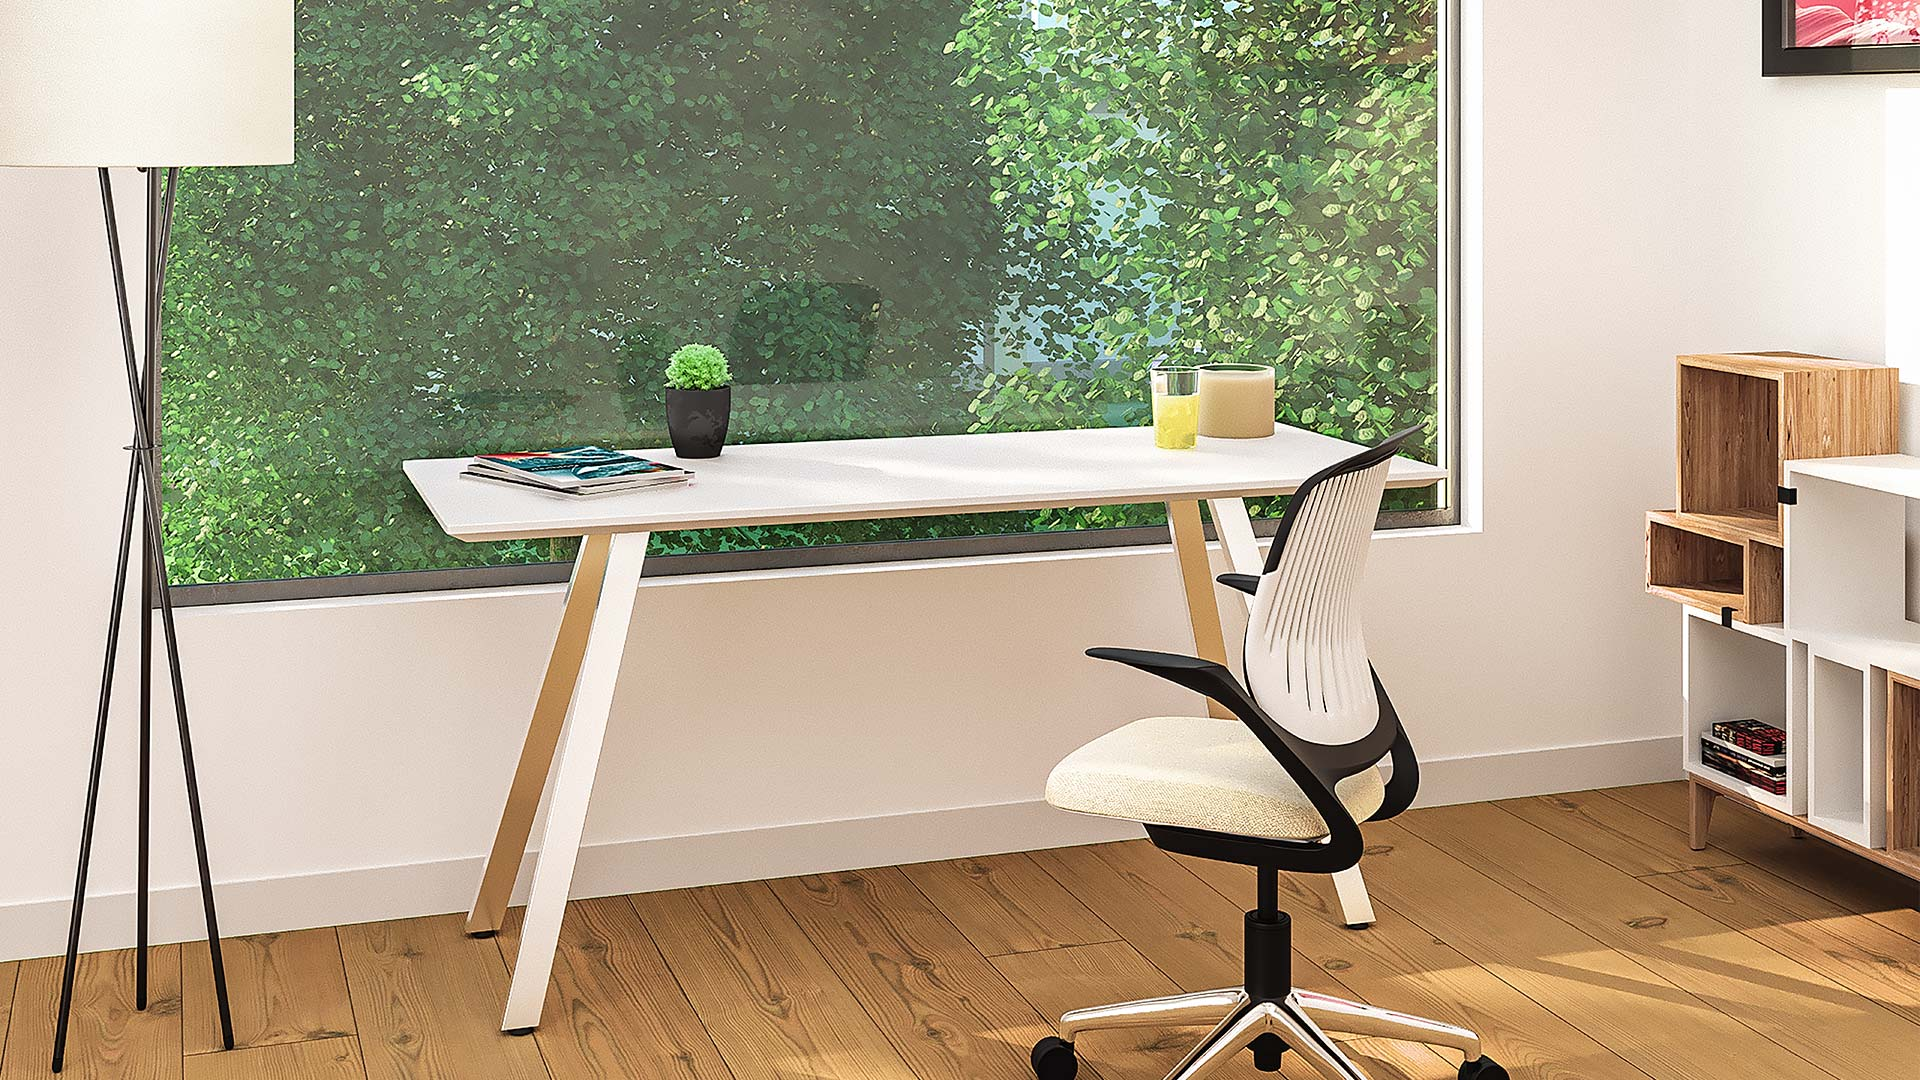 SpecialT AIM™ Tables used in home office for personal use